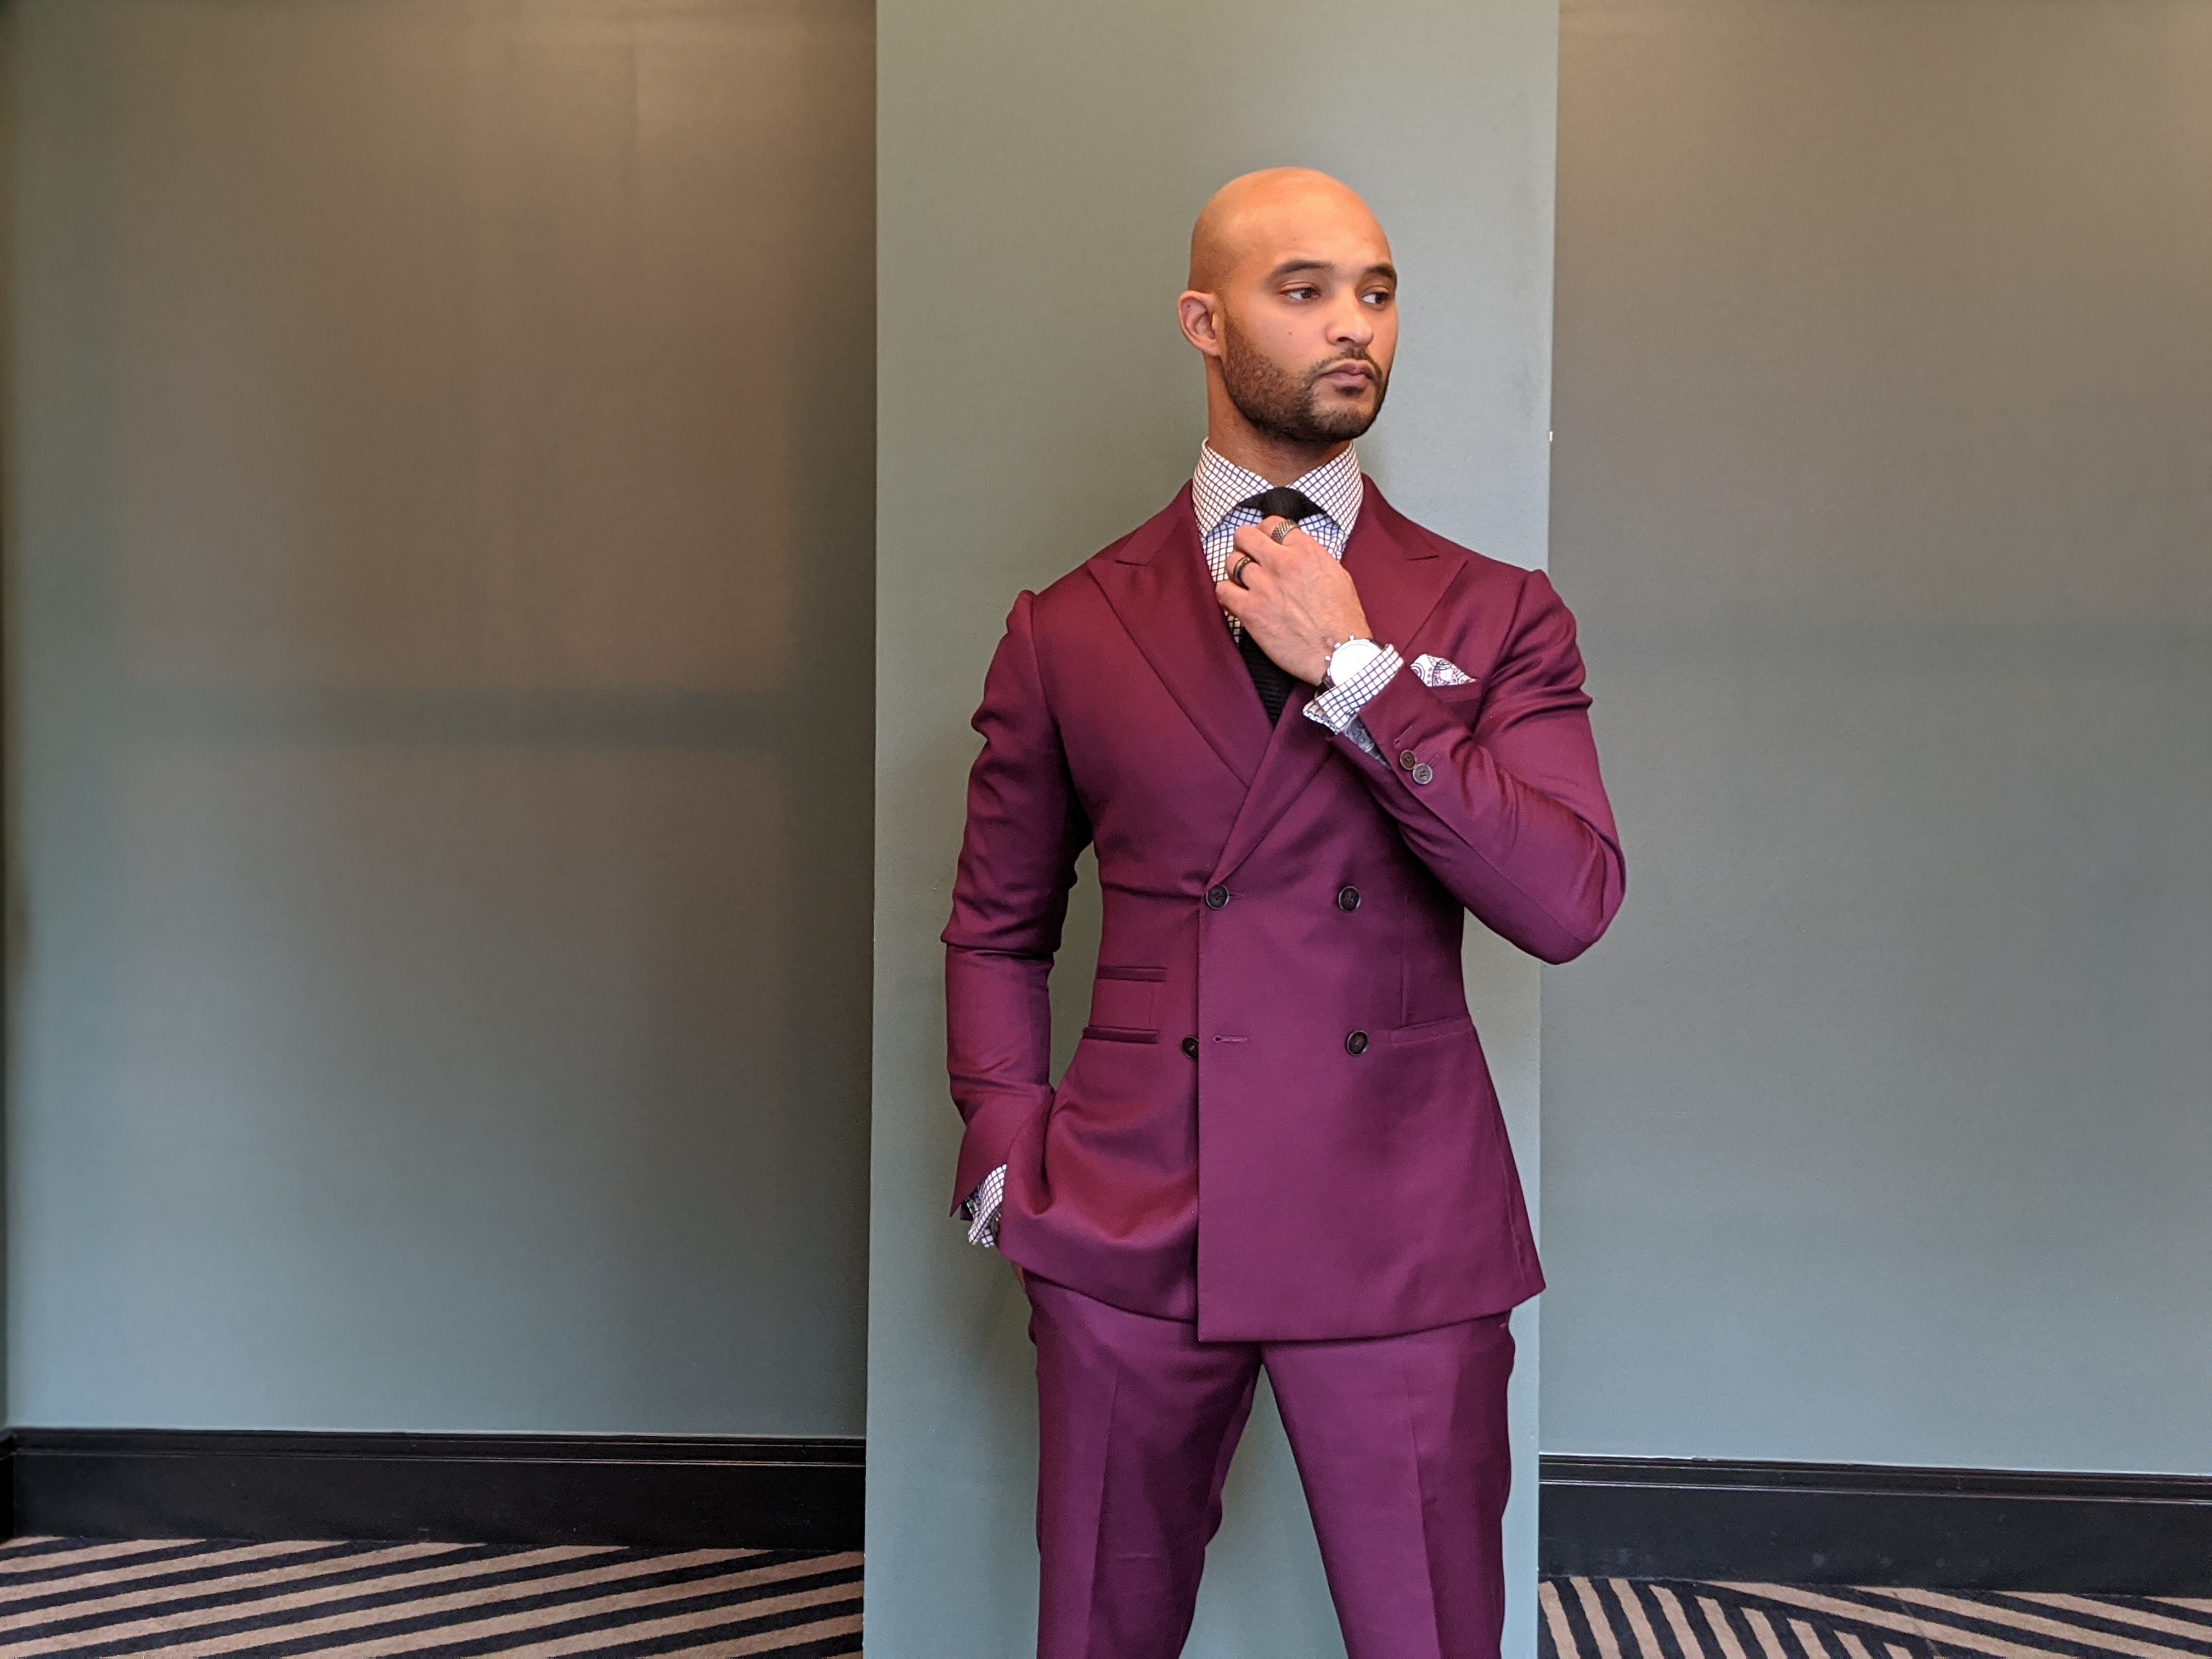 bespoke eggplant double-breasted suit